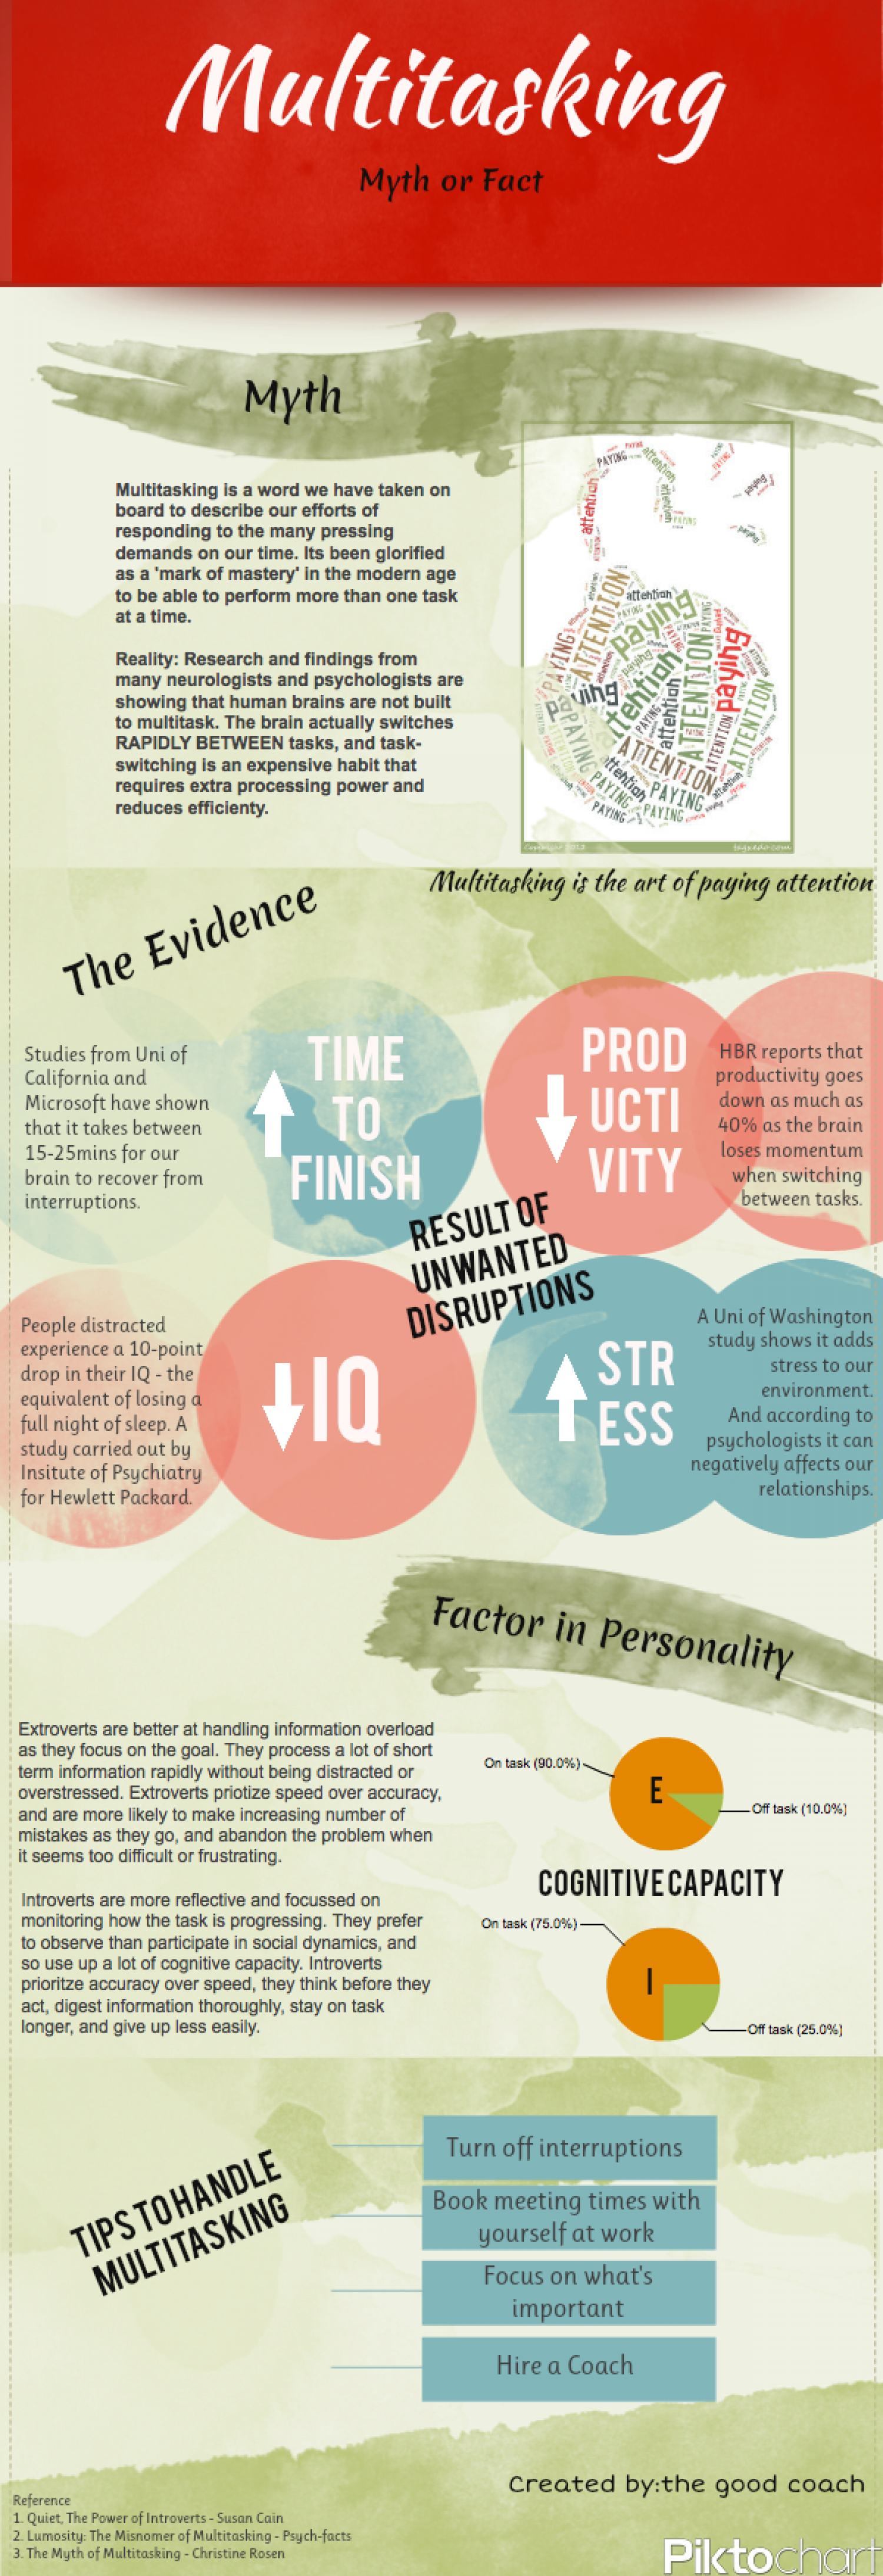 Multitasking: Myth or Fact Infographic